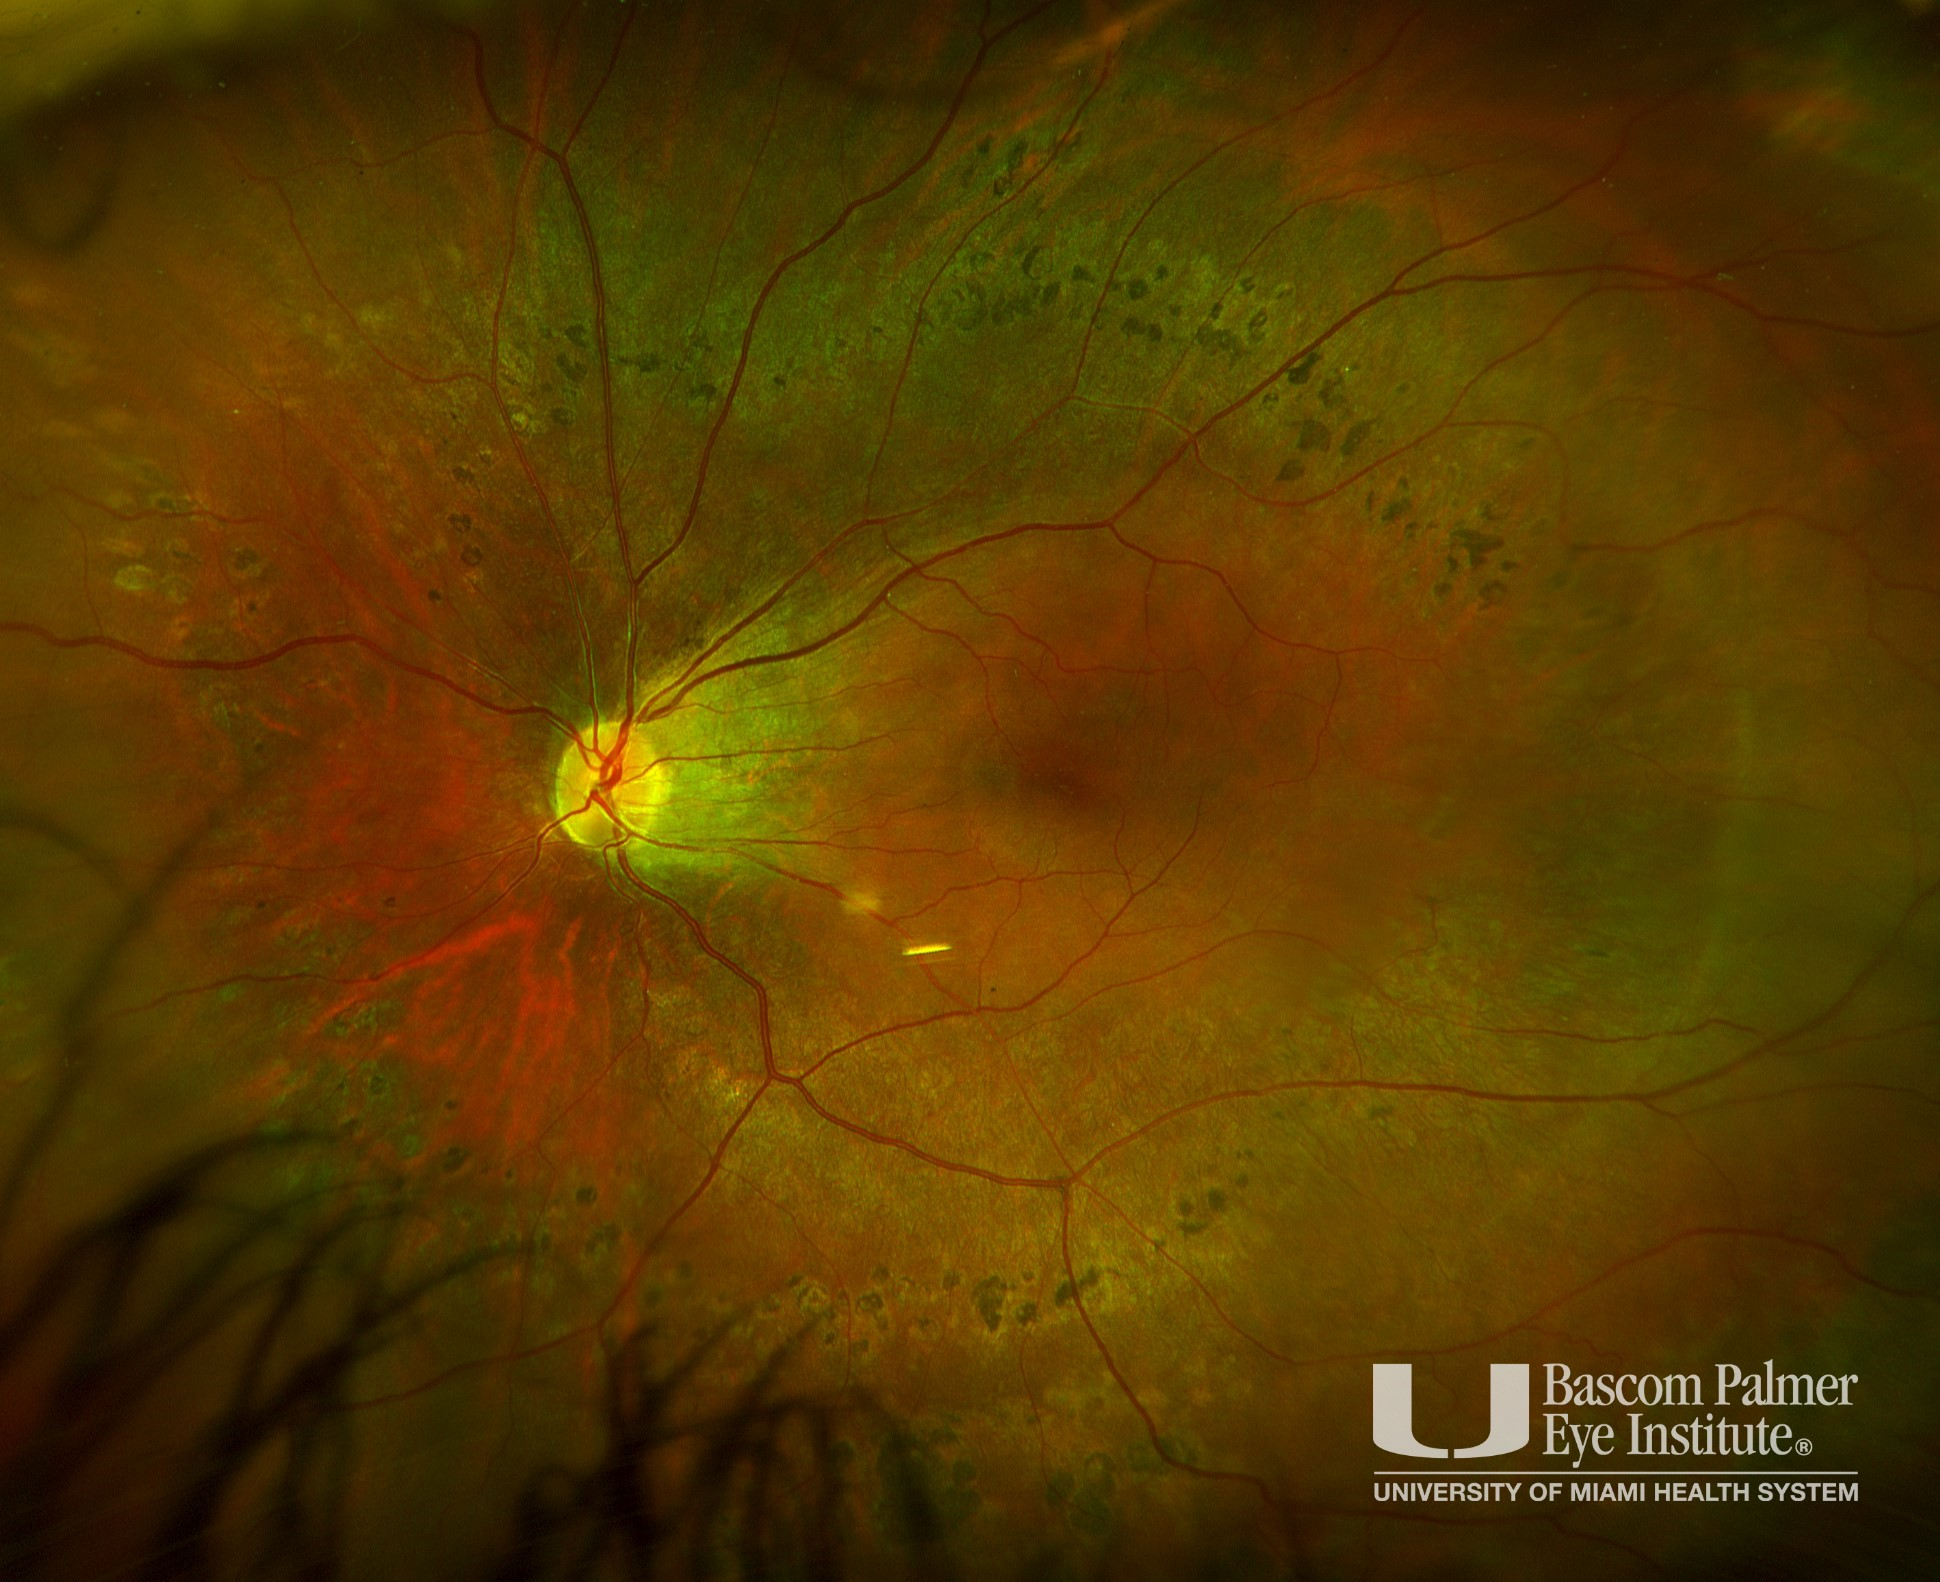 Wegner's Syndrome With Tractional Retinal Detachment